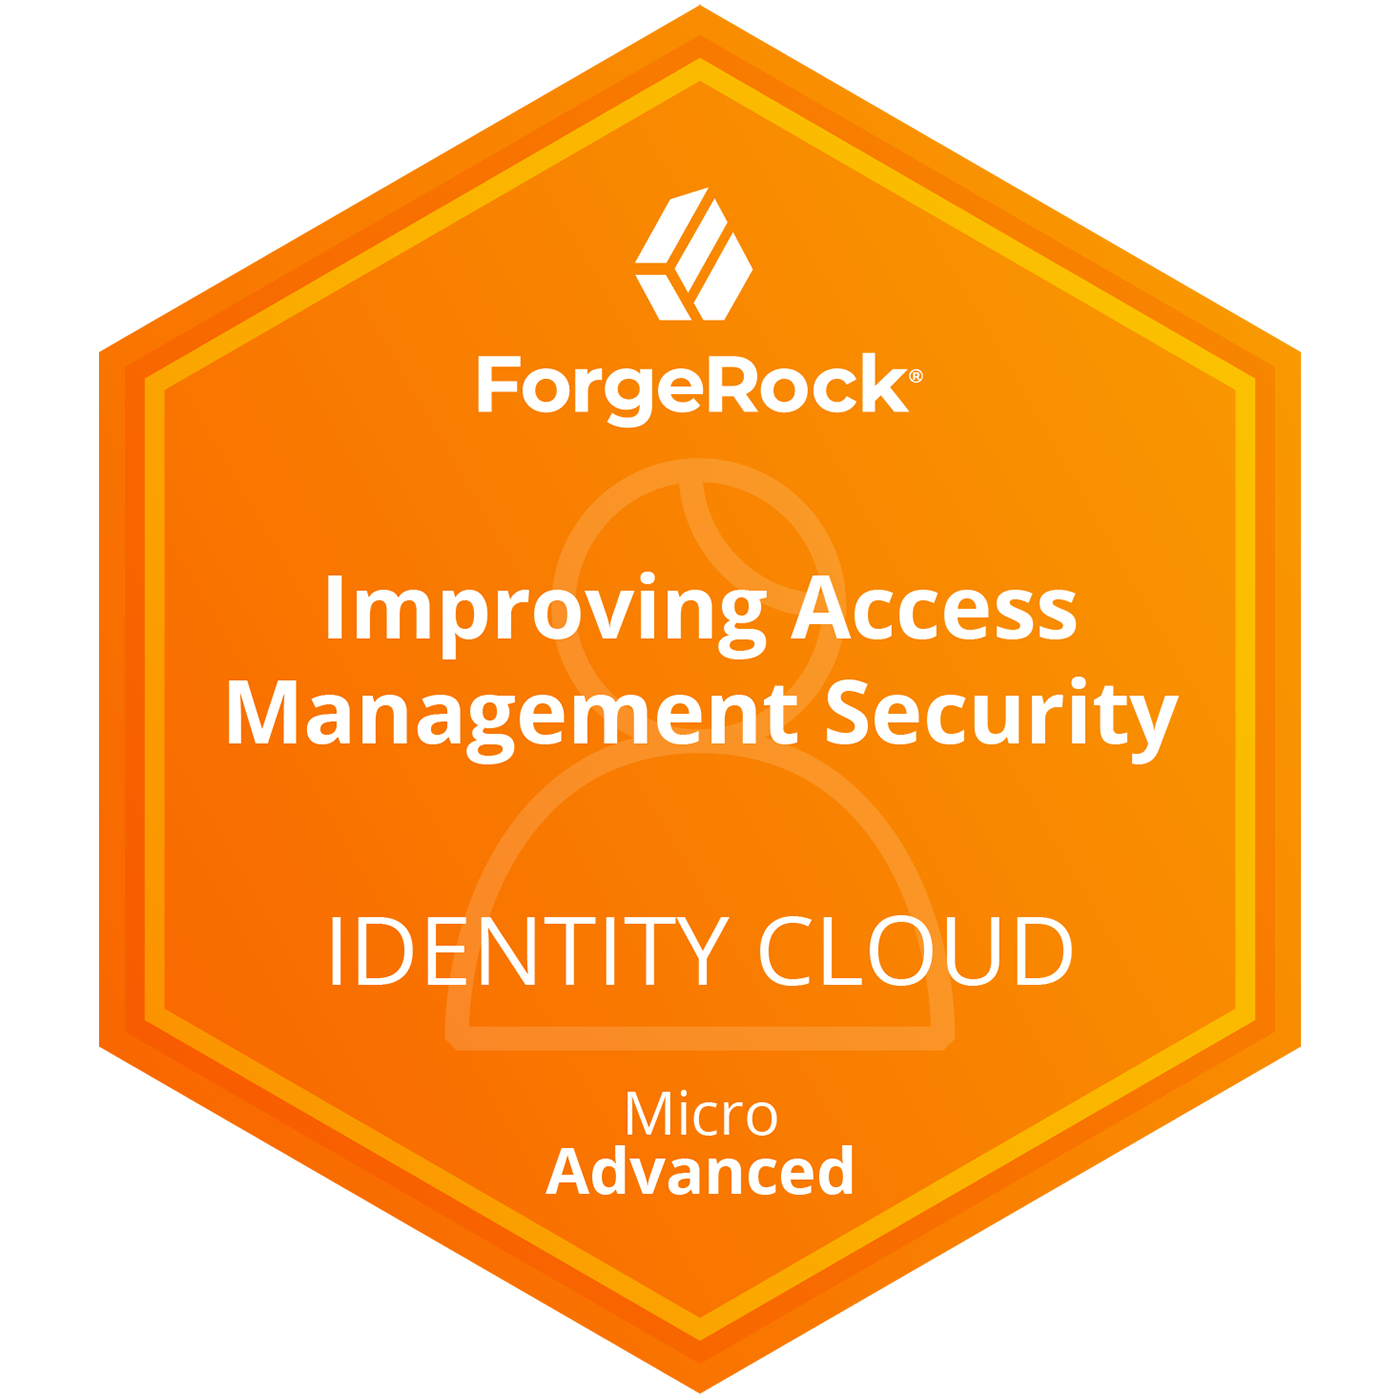 ForgeRock Identity Cloud: Access Management Micro Advanced Skills - Improving Access Management Security